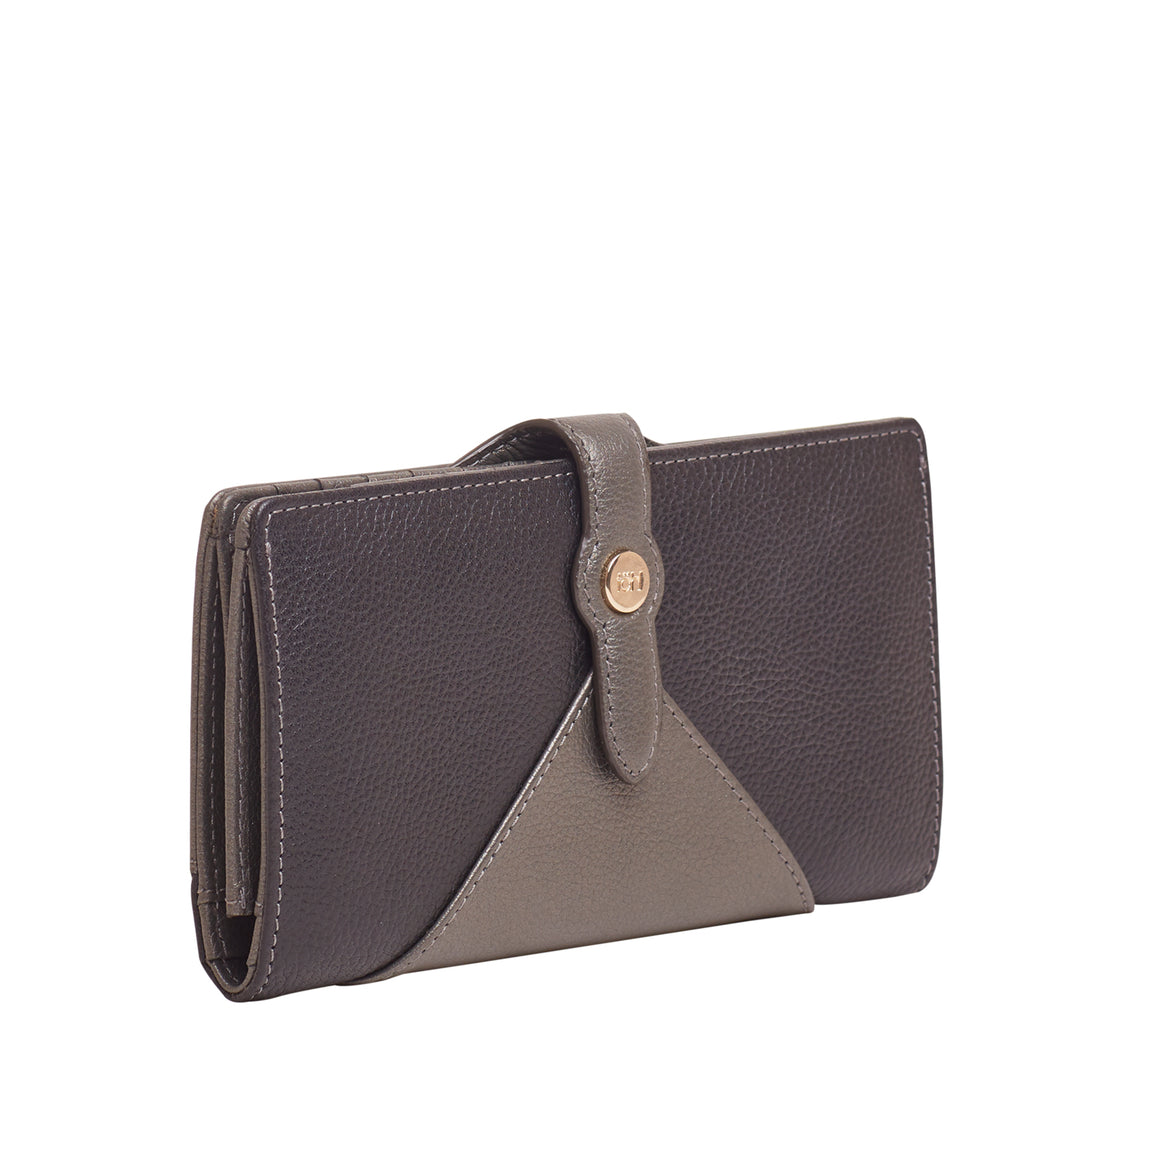 WT 0016 - TOHL BAHIA WOMEN'S WALLET - CHARCOAL BLACK